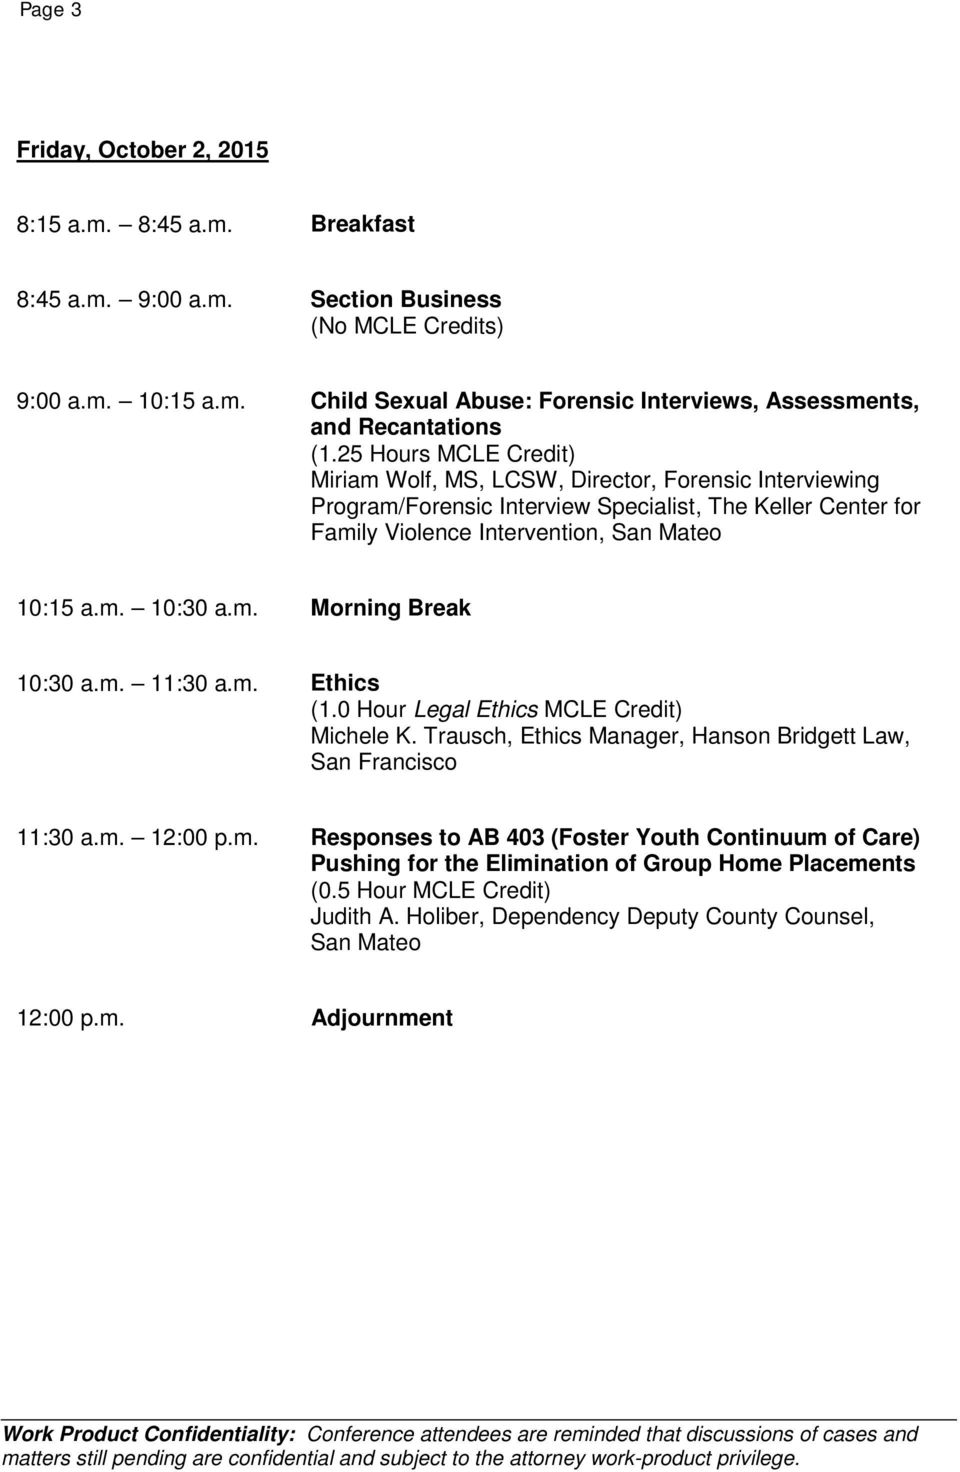 m. 11:30 a.m. Ethics (1.0 Hour Legal Ethics MCLE Credit) Michele K. Trausch, Ethics Manager, Hanson Bridgett Law, San Francisco 11:30 a.m. 12:00 p.m. Responses to AB 403 (Foster Youth Continuum of Care) Pushing for the Elimination of Group Home Placements (0.